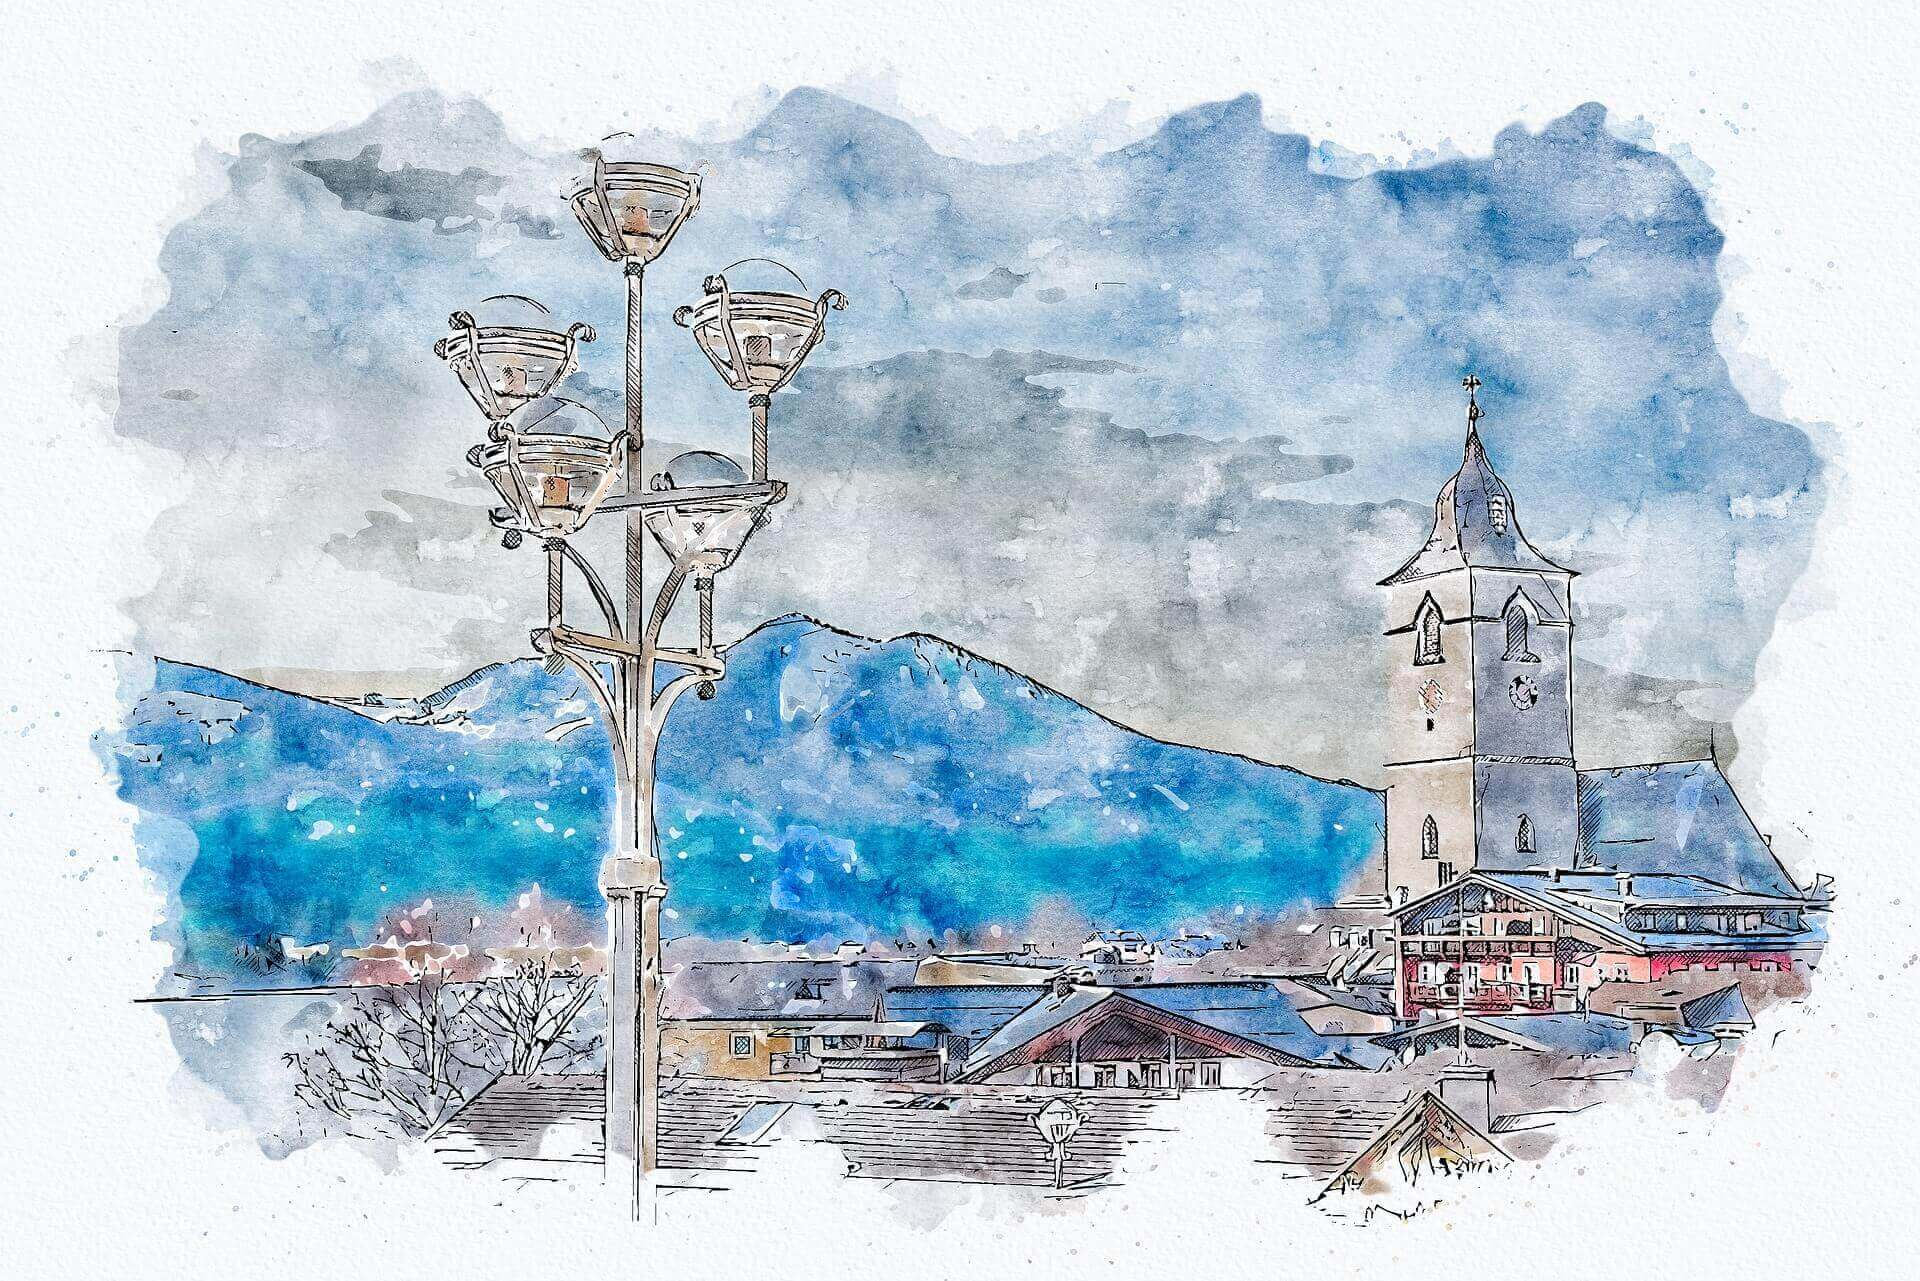 painting of a town with mountains in the background